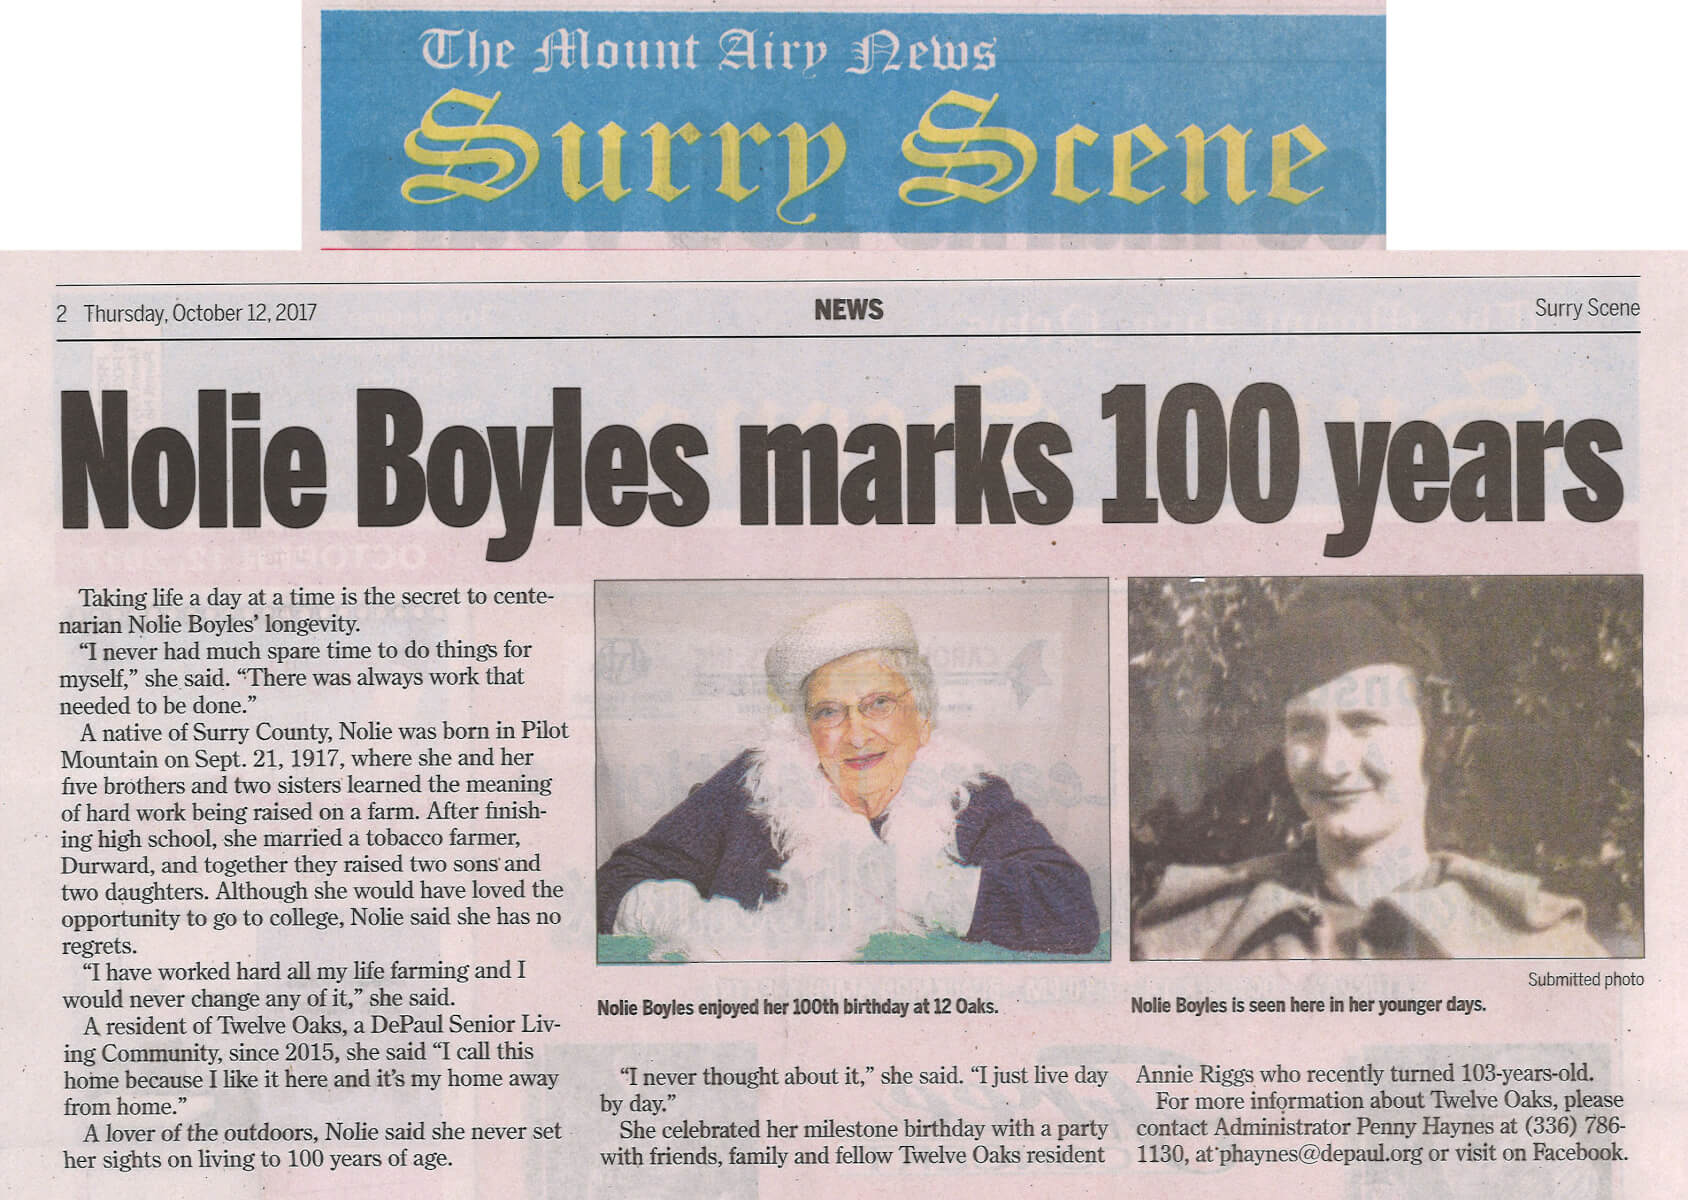 Nolie Boyles, a resident of Twelve Oaks celebrates 100 years. Article in The Mount Airy News October 12, 2017